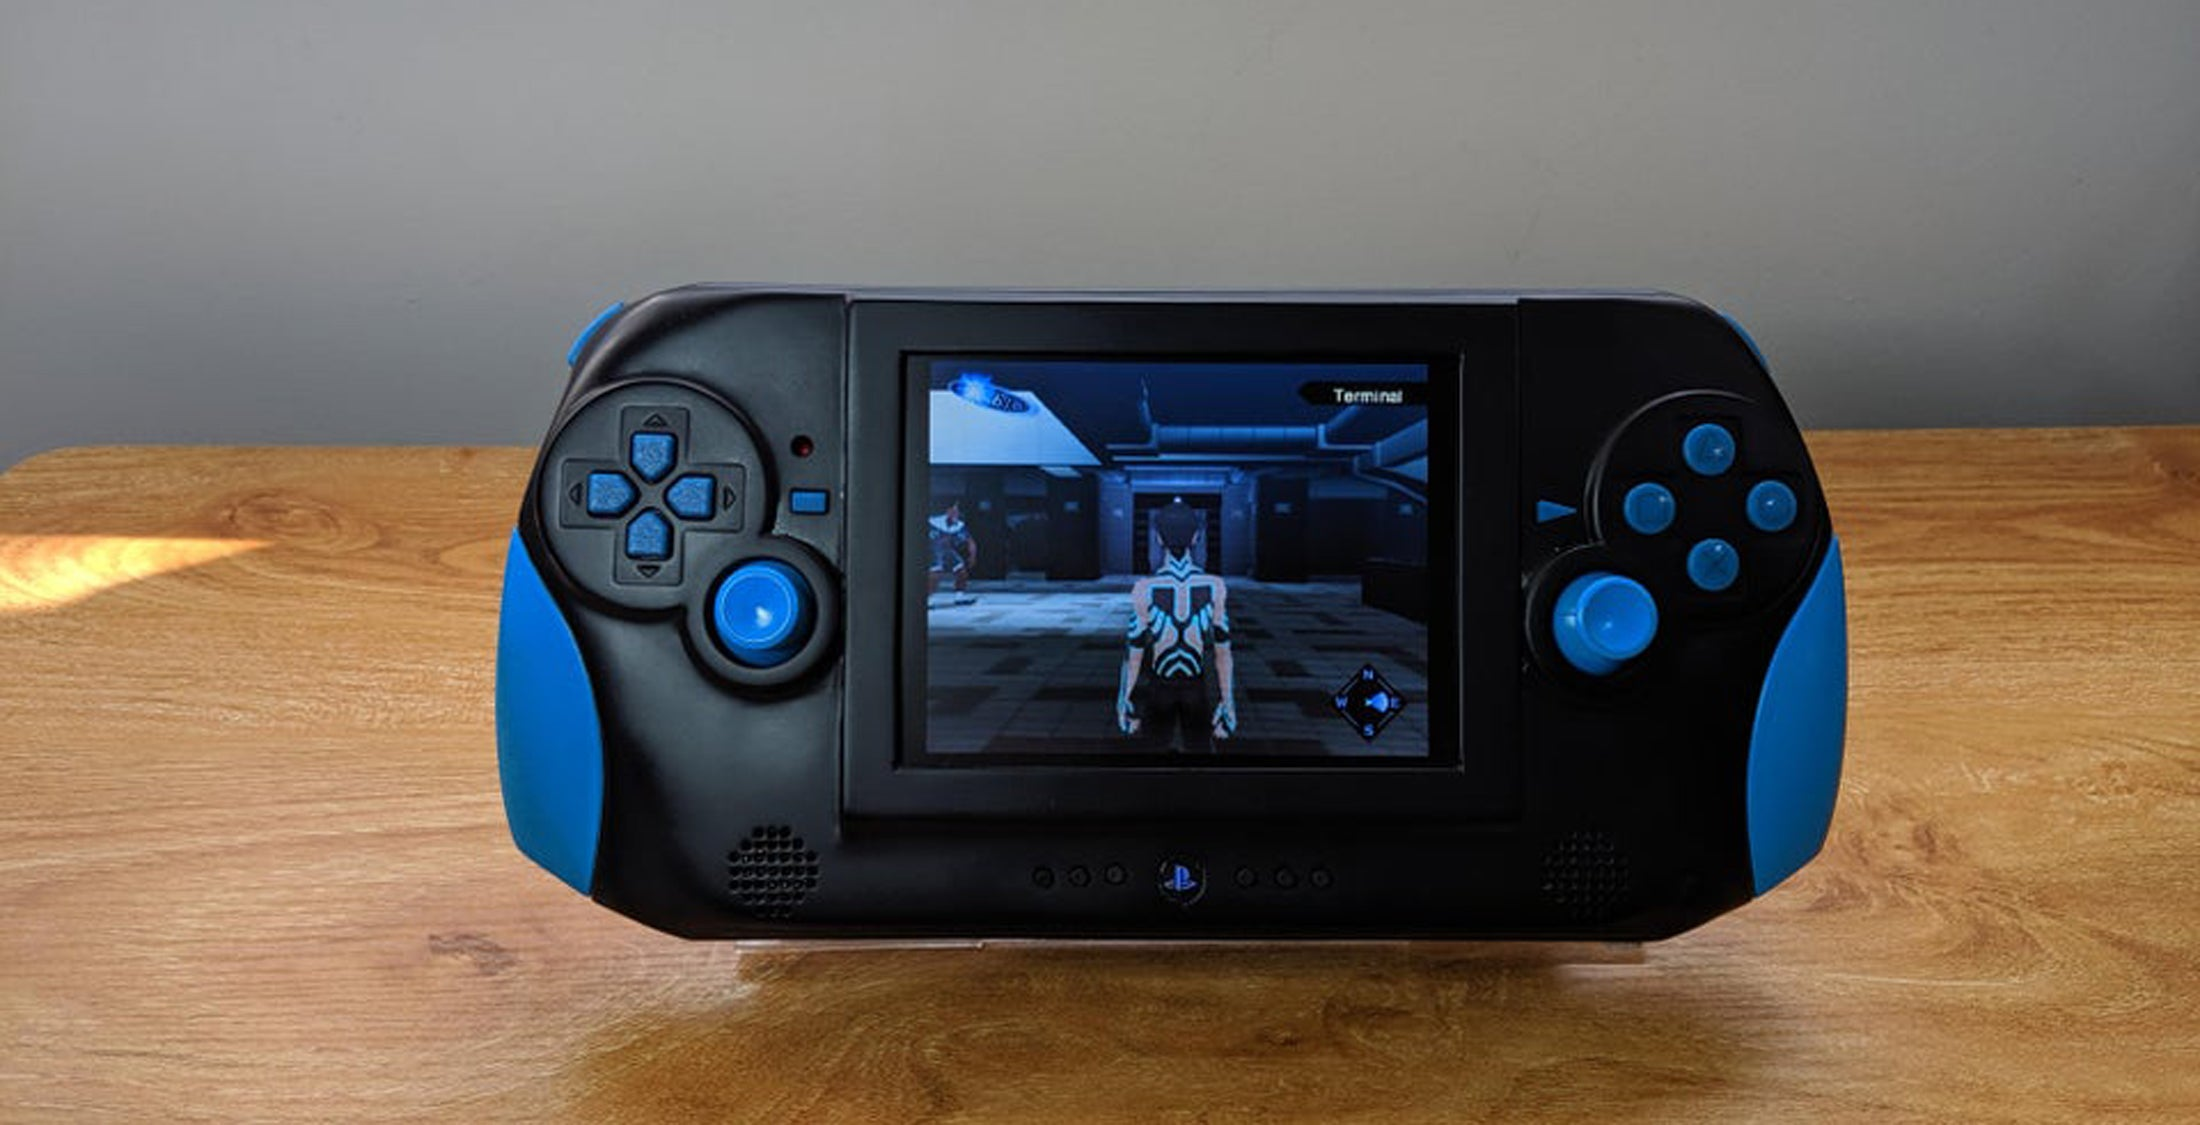 Sony PS2 reborn as handheld console in this incredible mod